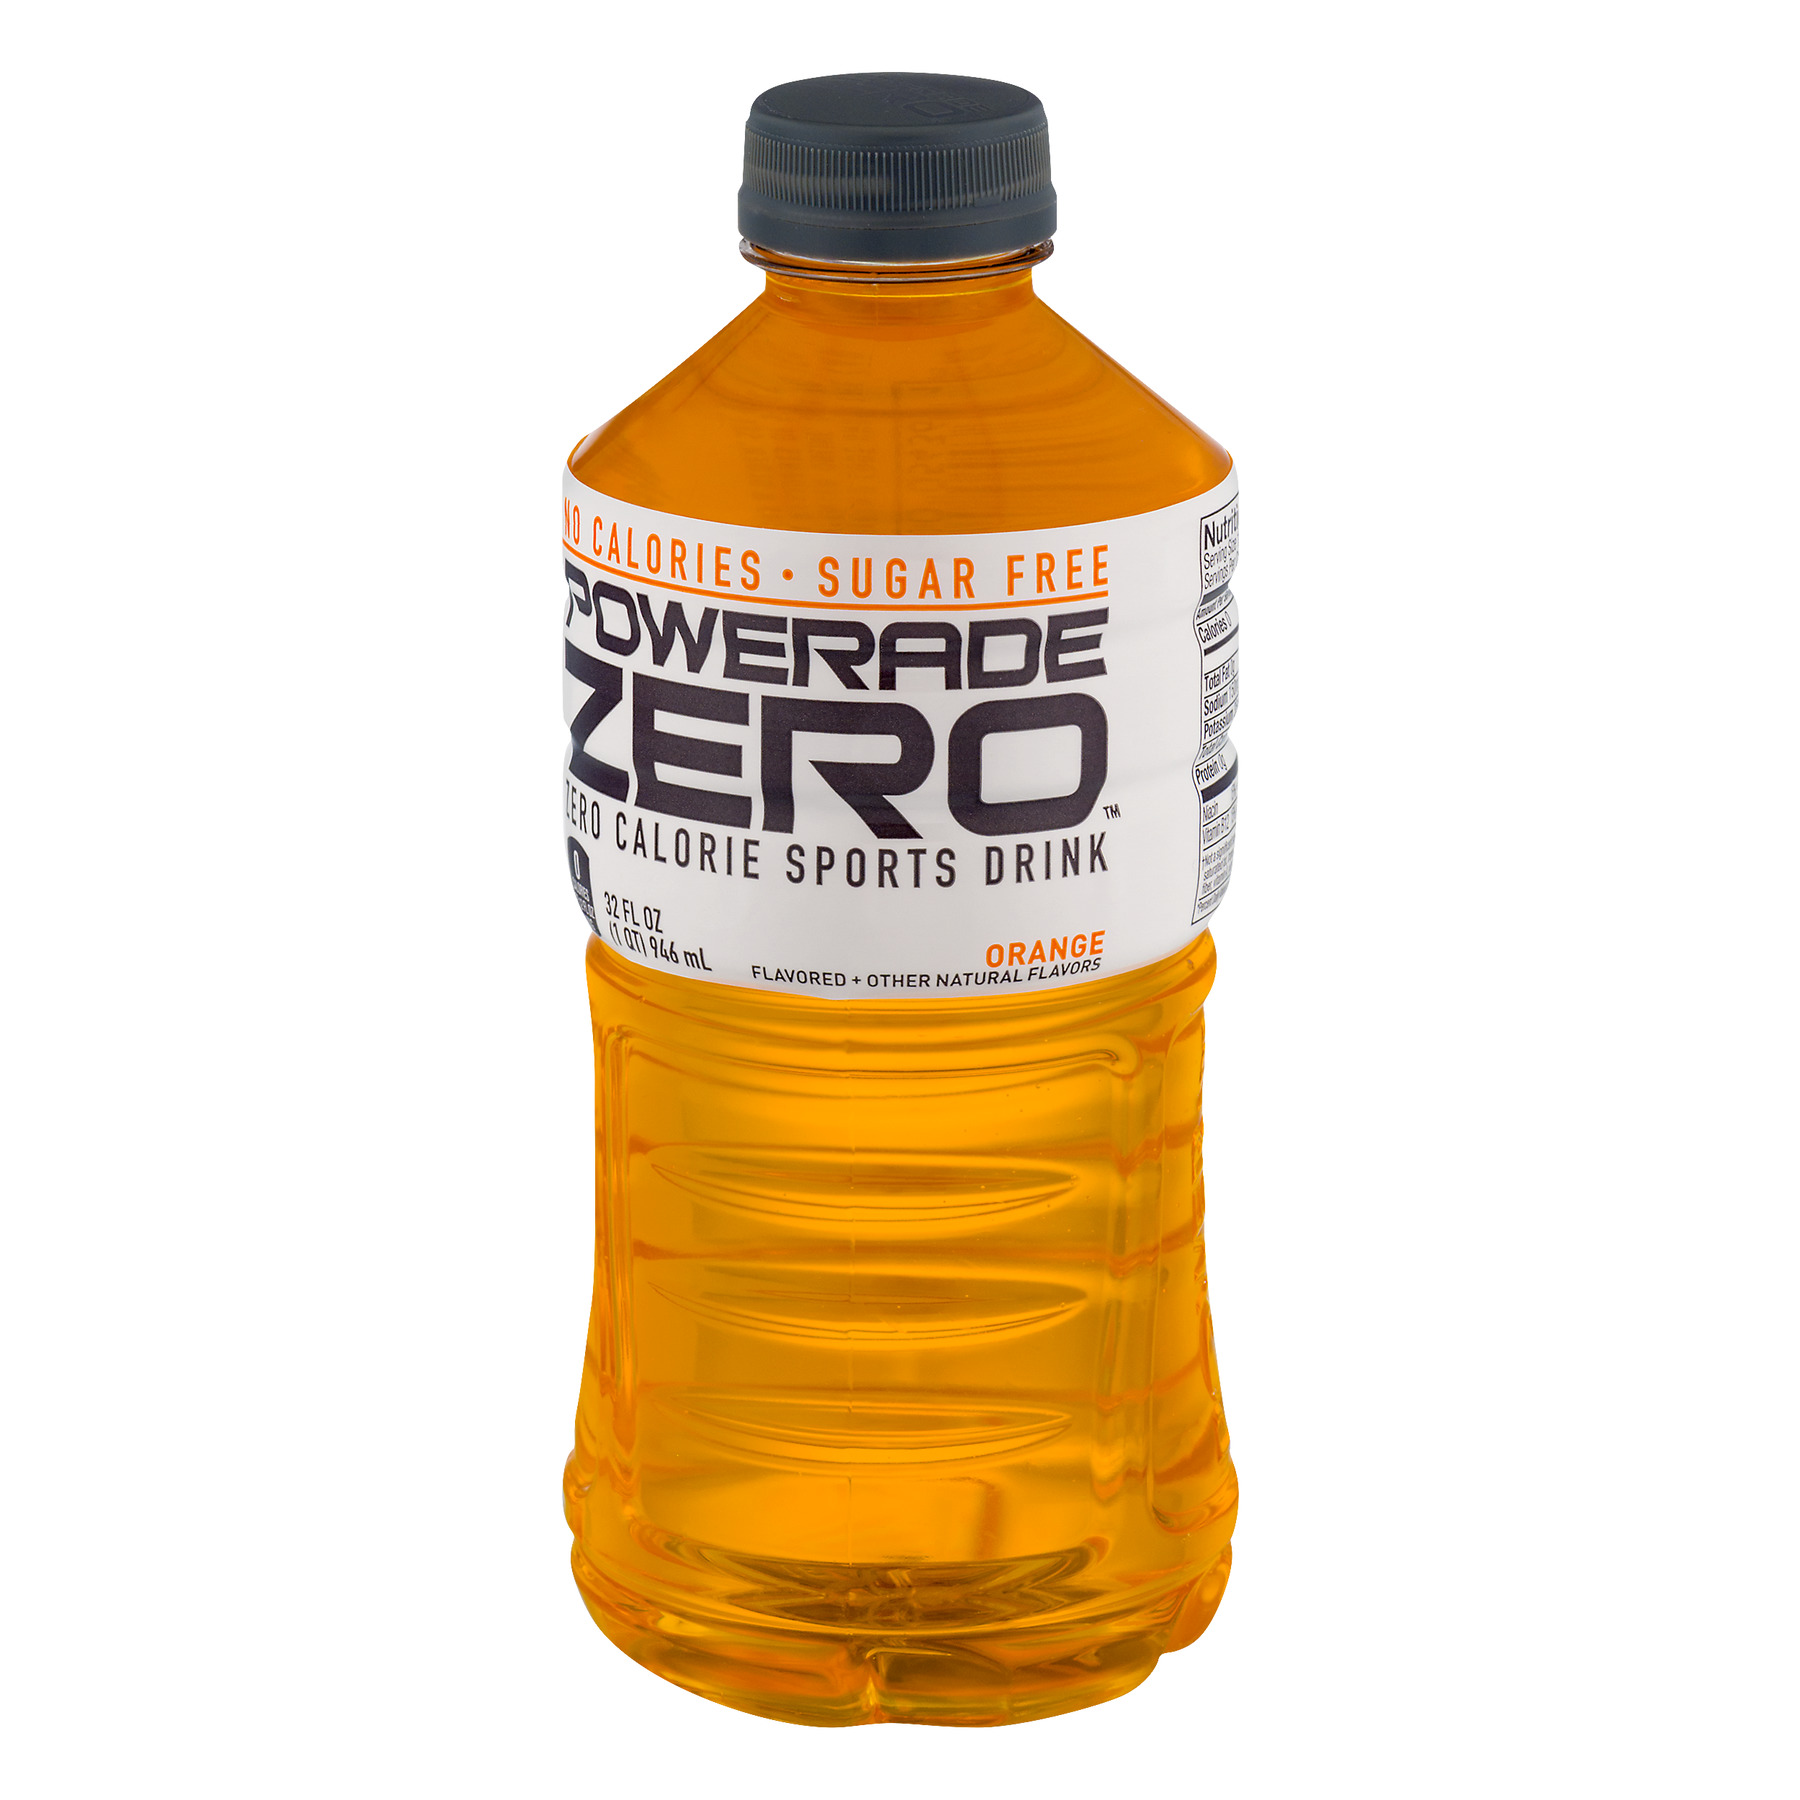 Powerade Zero Calorie Sports Drink Orange, 32.0 FL OZ - Walmart.com